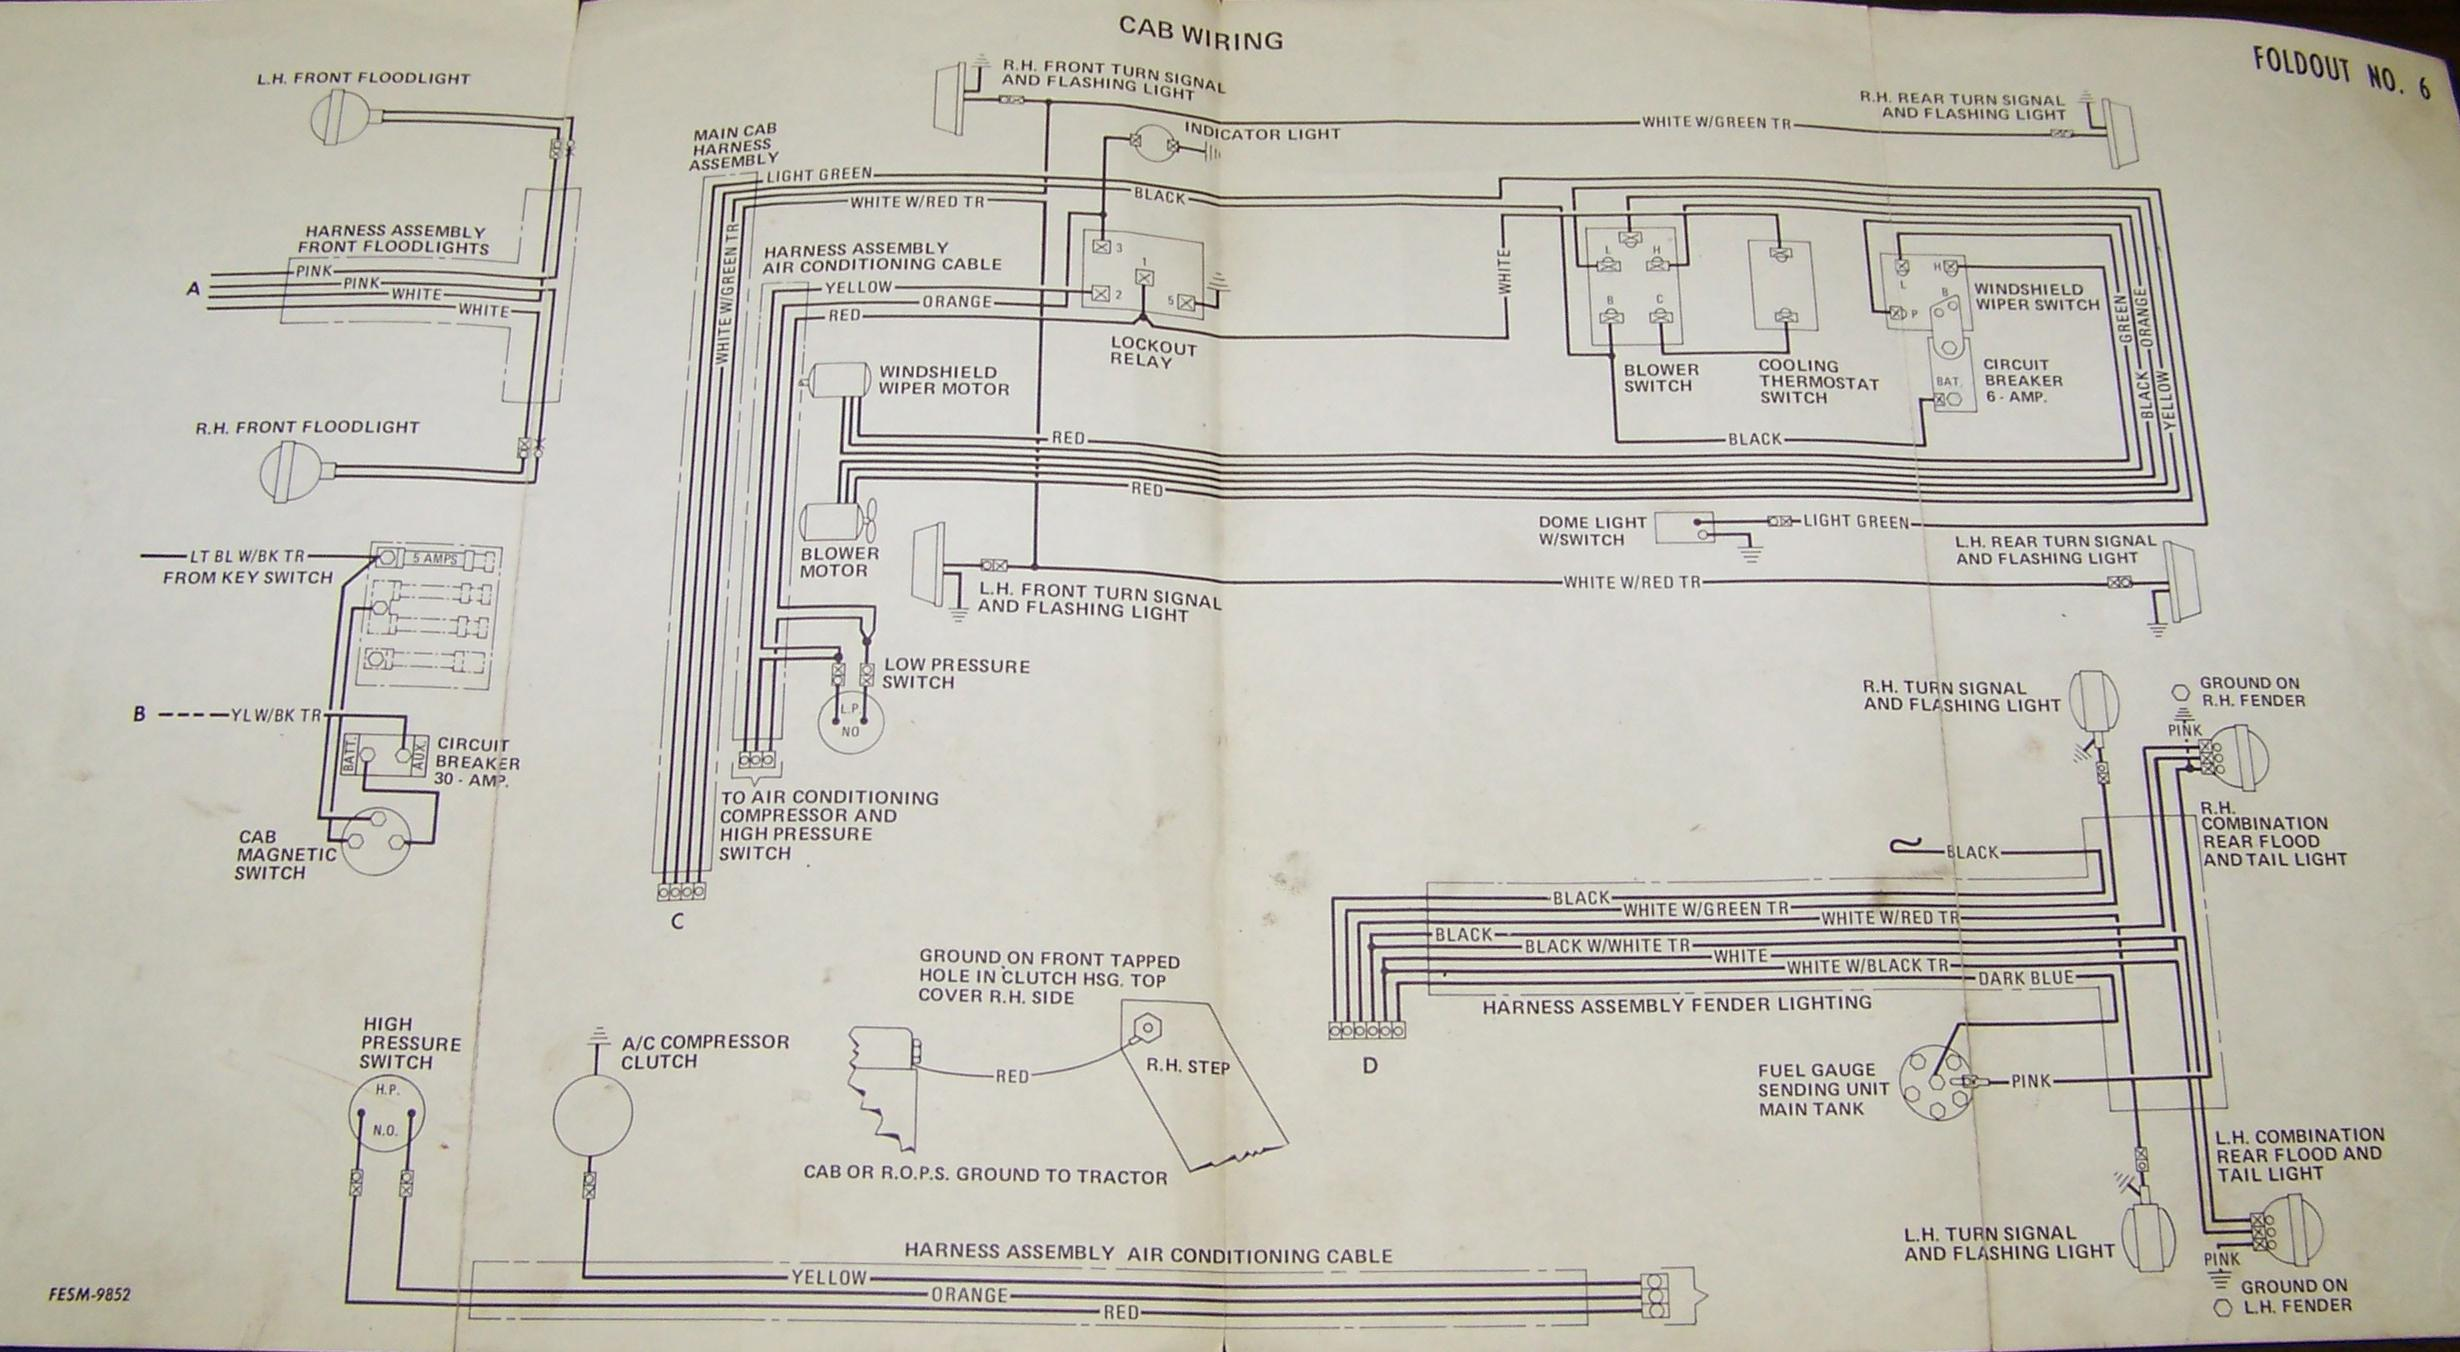 Wiring Diagram For Cub Cadet Tractor 65 Ih Trusted Case 885 Detailed International